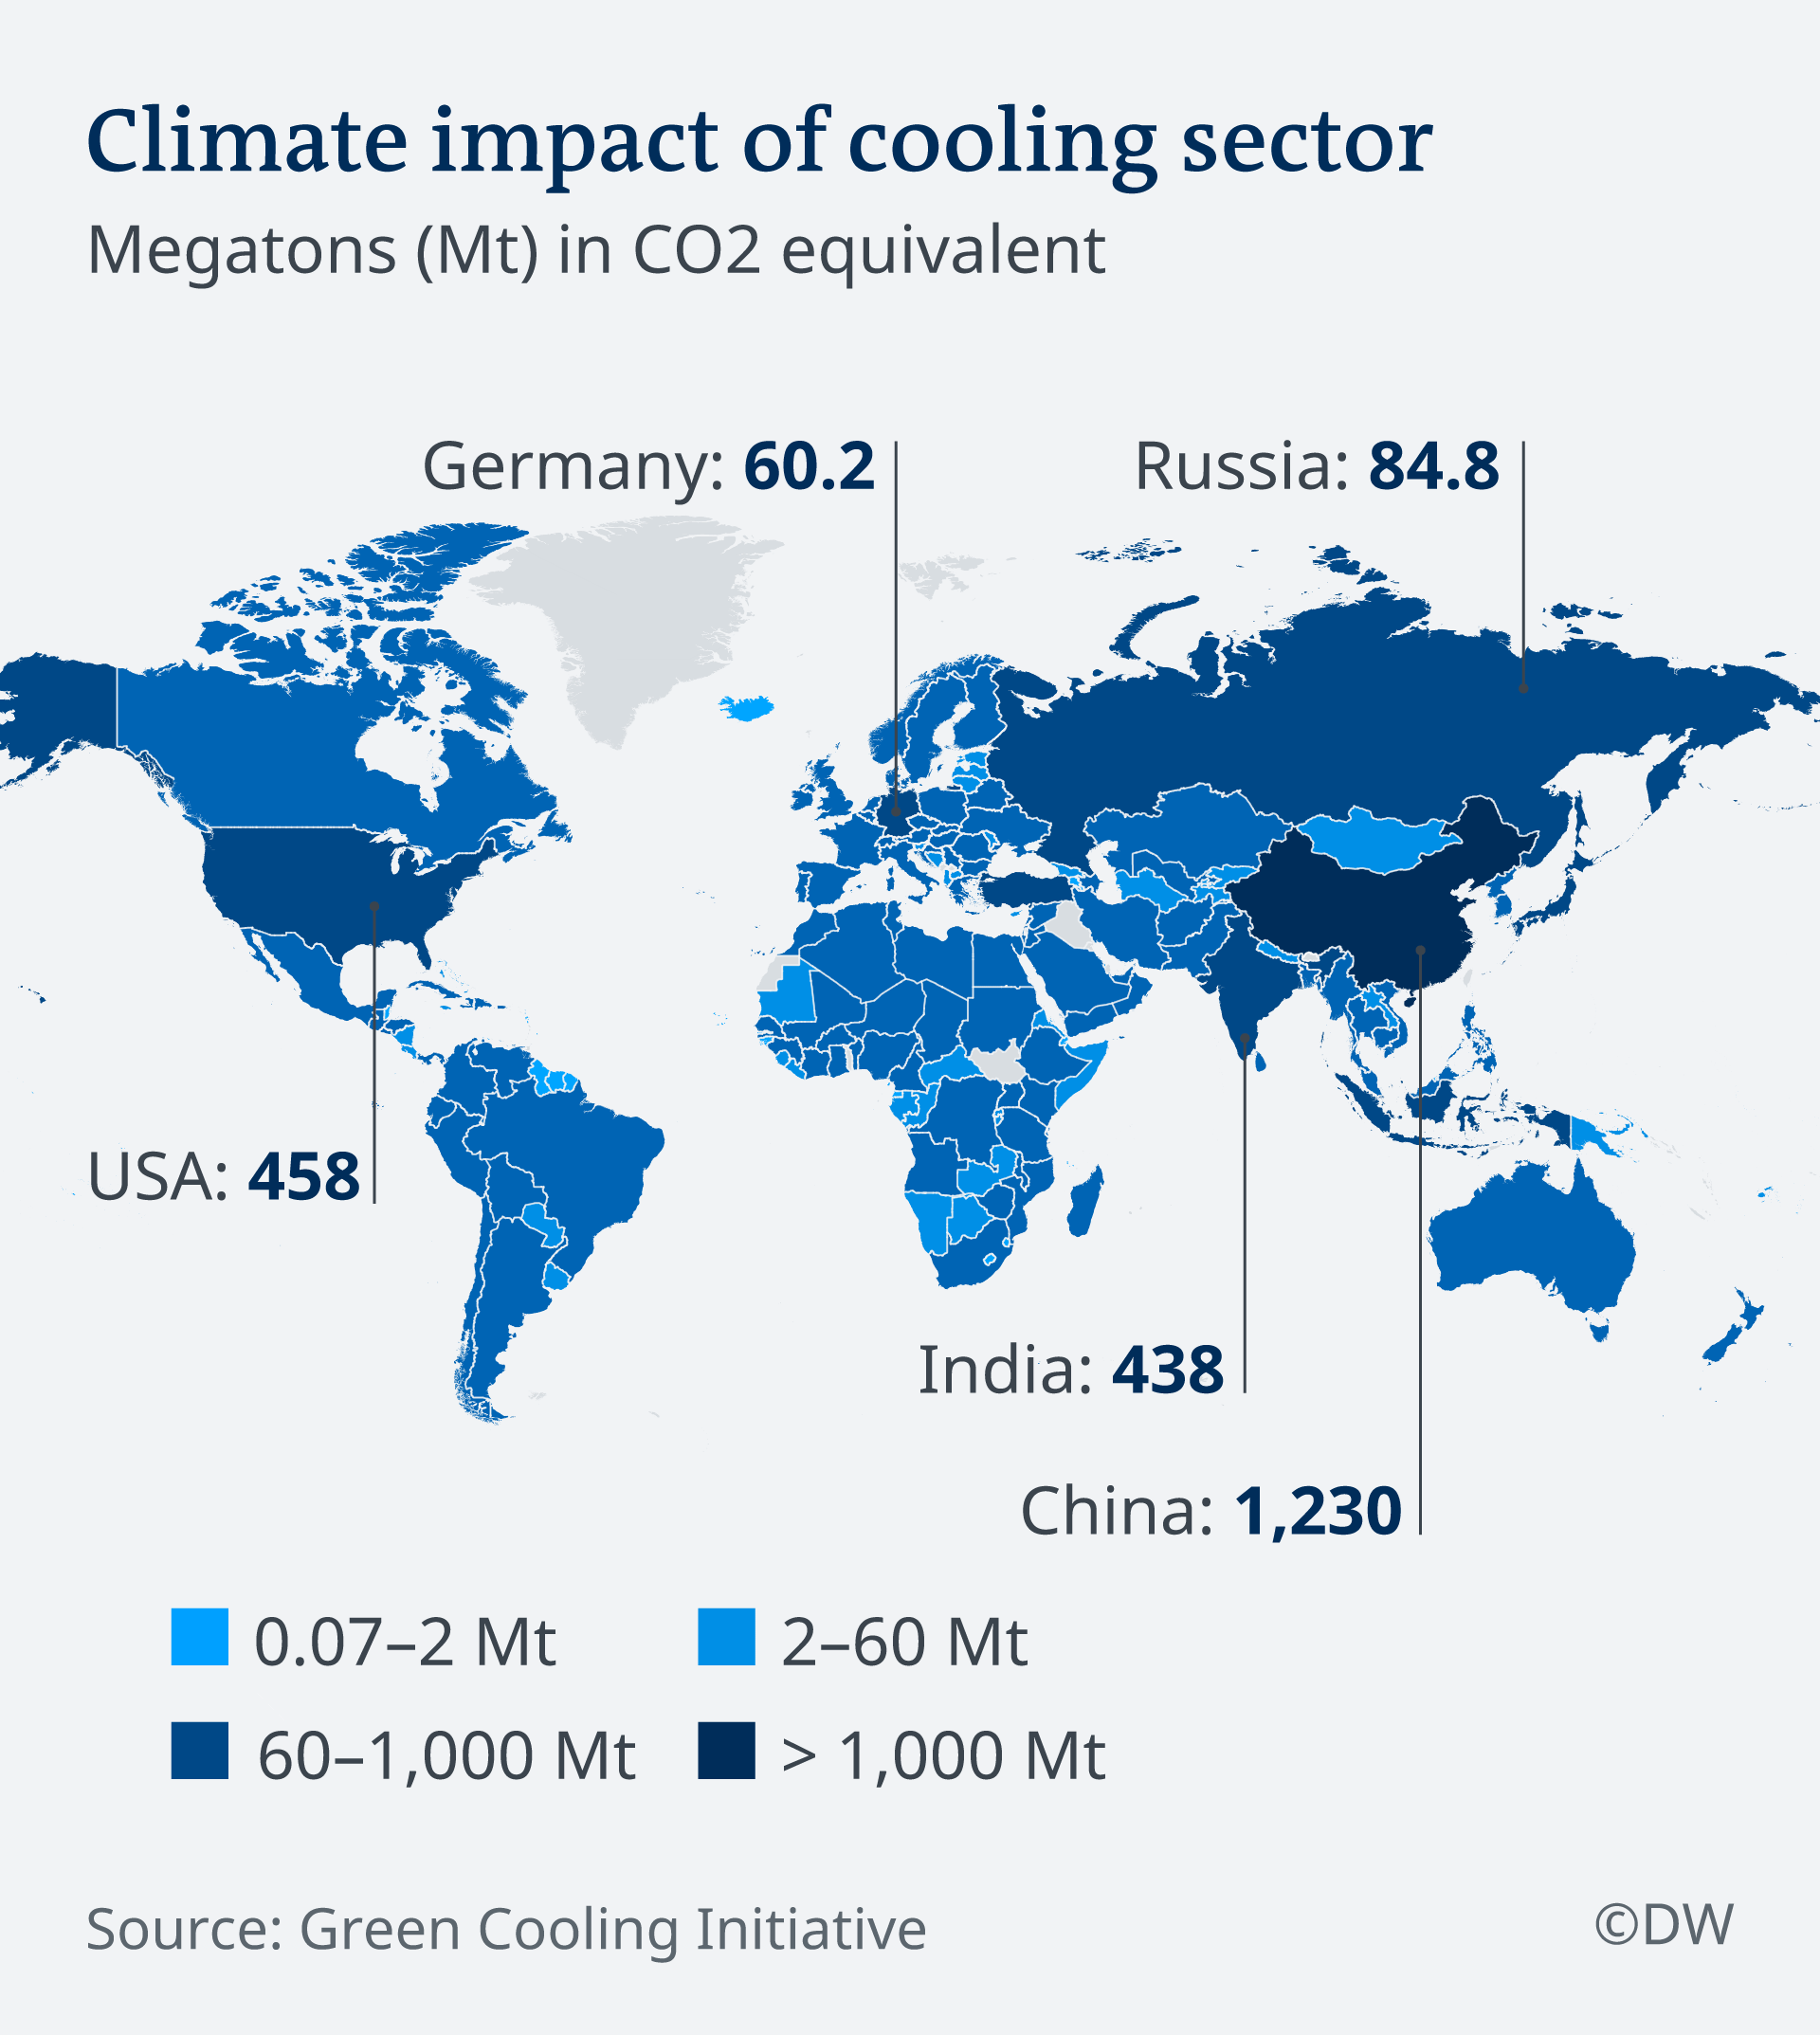 Total emissions of cooling sector